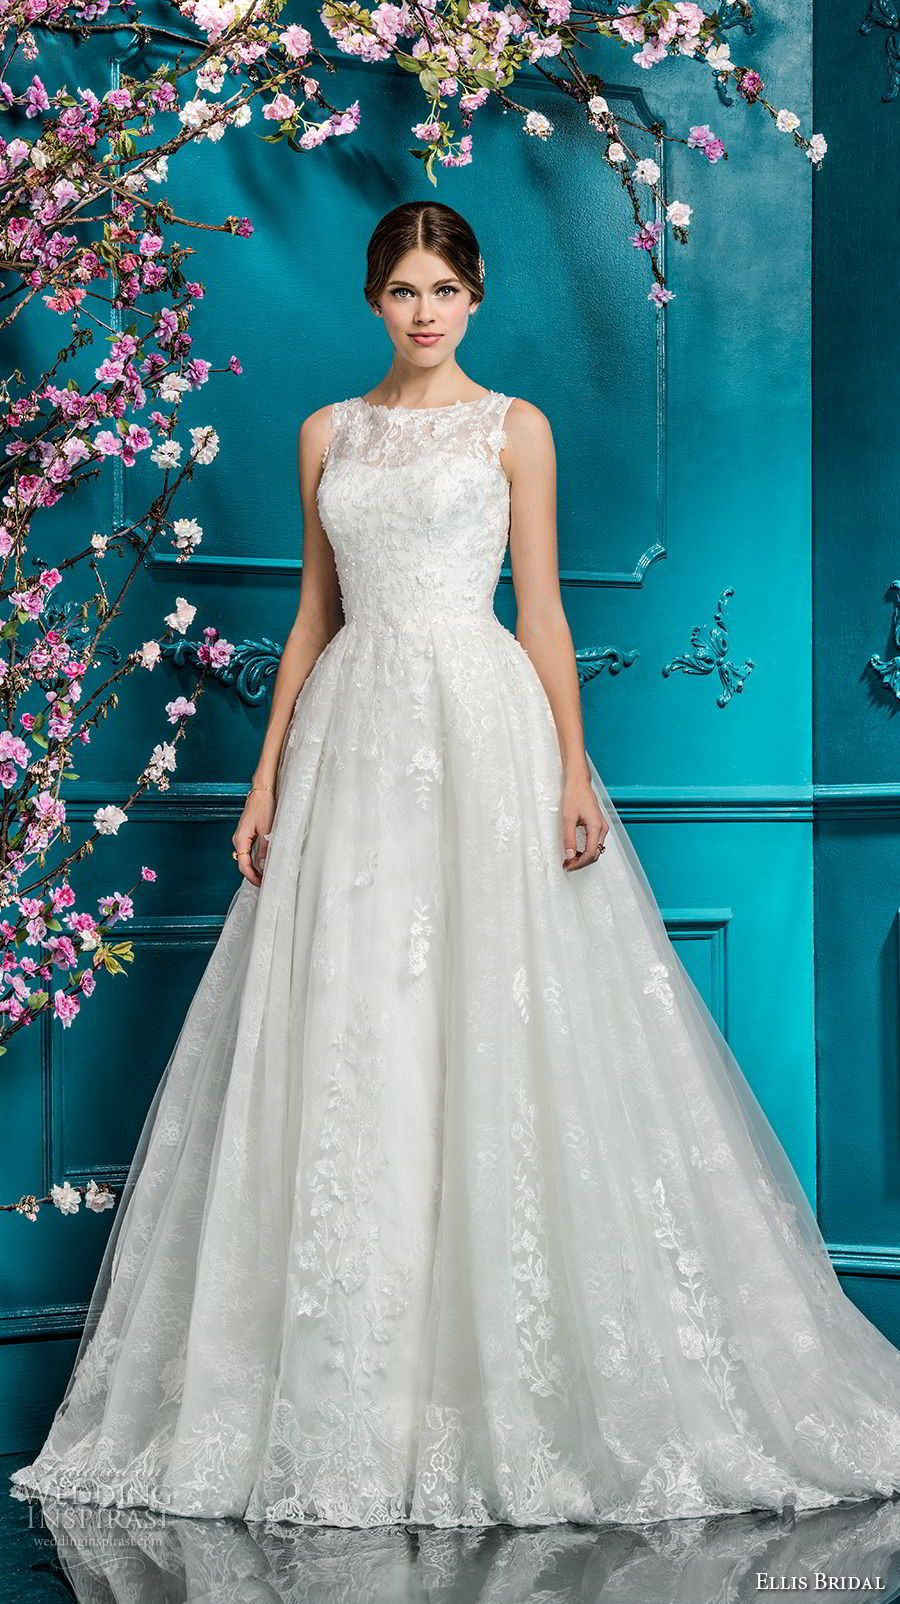 7ad6a42b073 ellis bridals 2018 sleeveless illusion jewel sweetheart neckline full  embellishment romantic a line wedding dress covered lace back chapel train  (16) mv ...